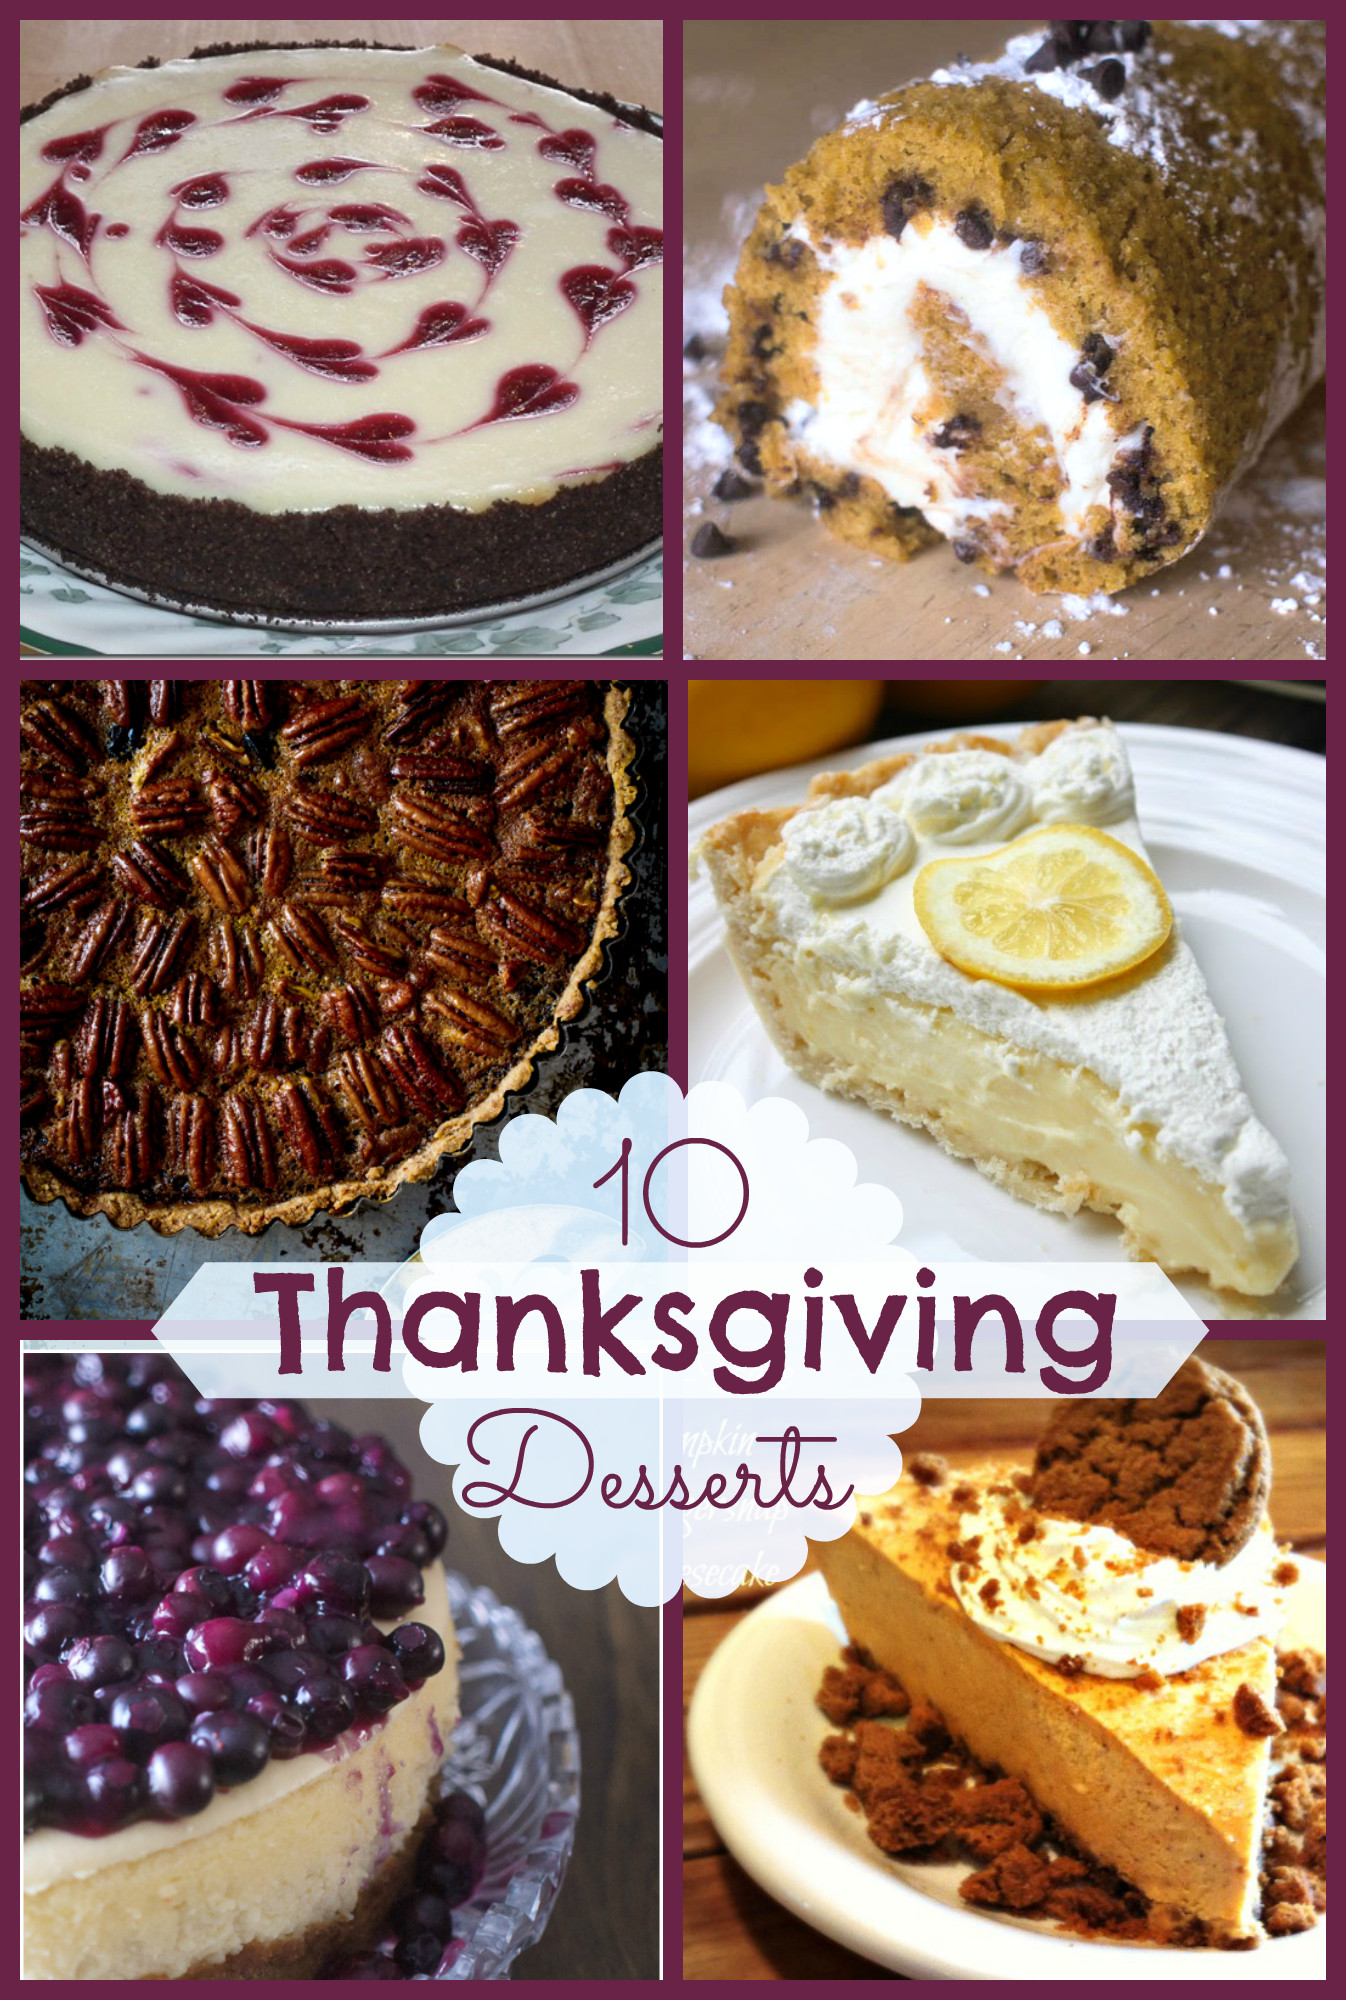 Pies For Thanksgiving  10 Fabulous Thanksgiving Desserts